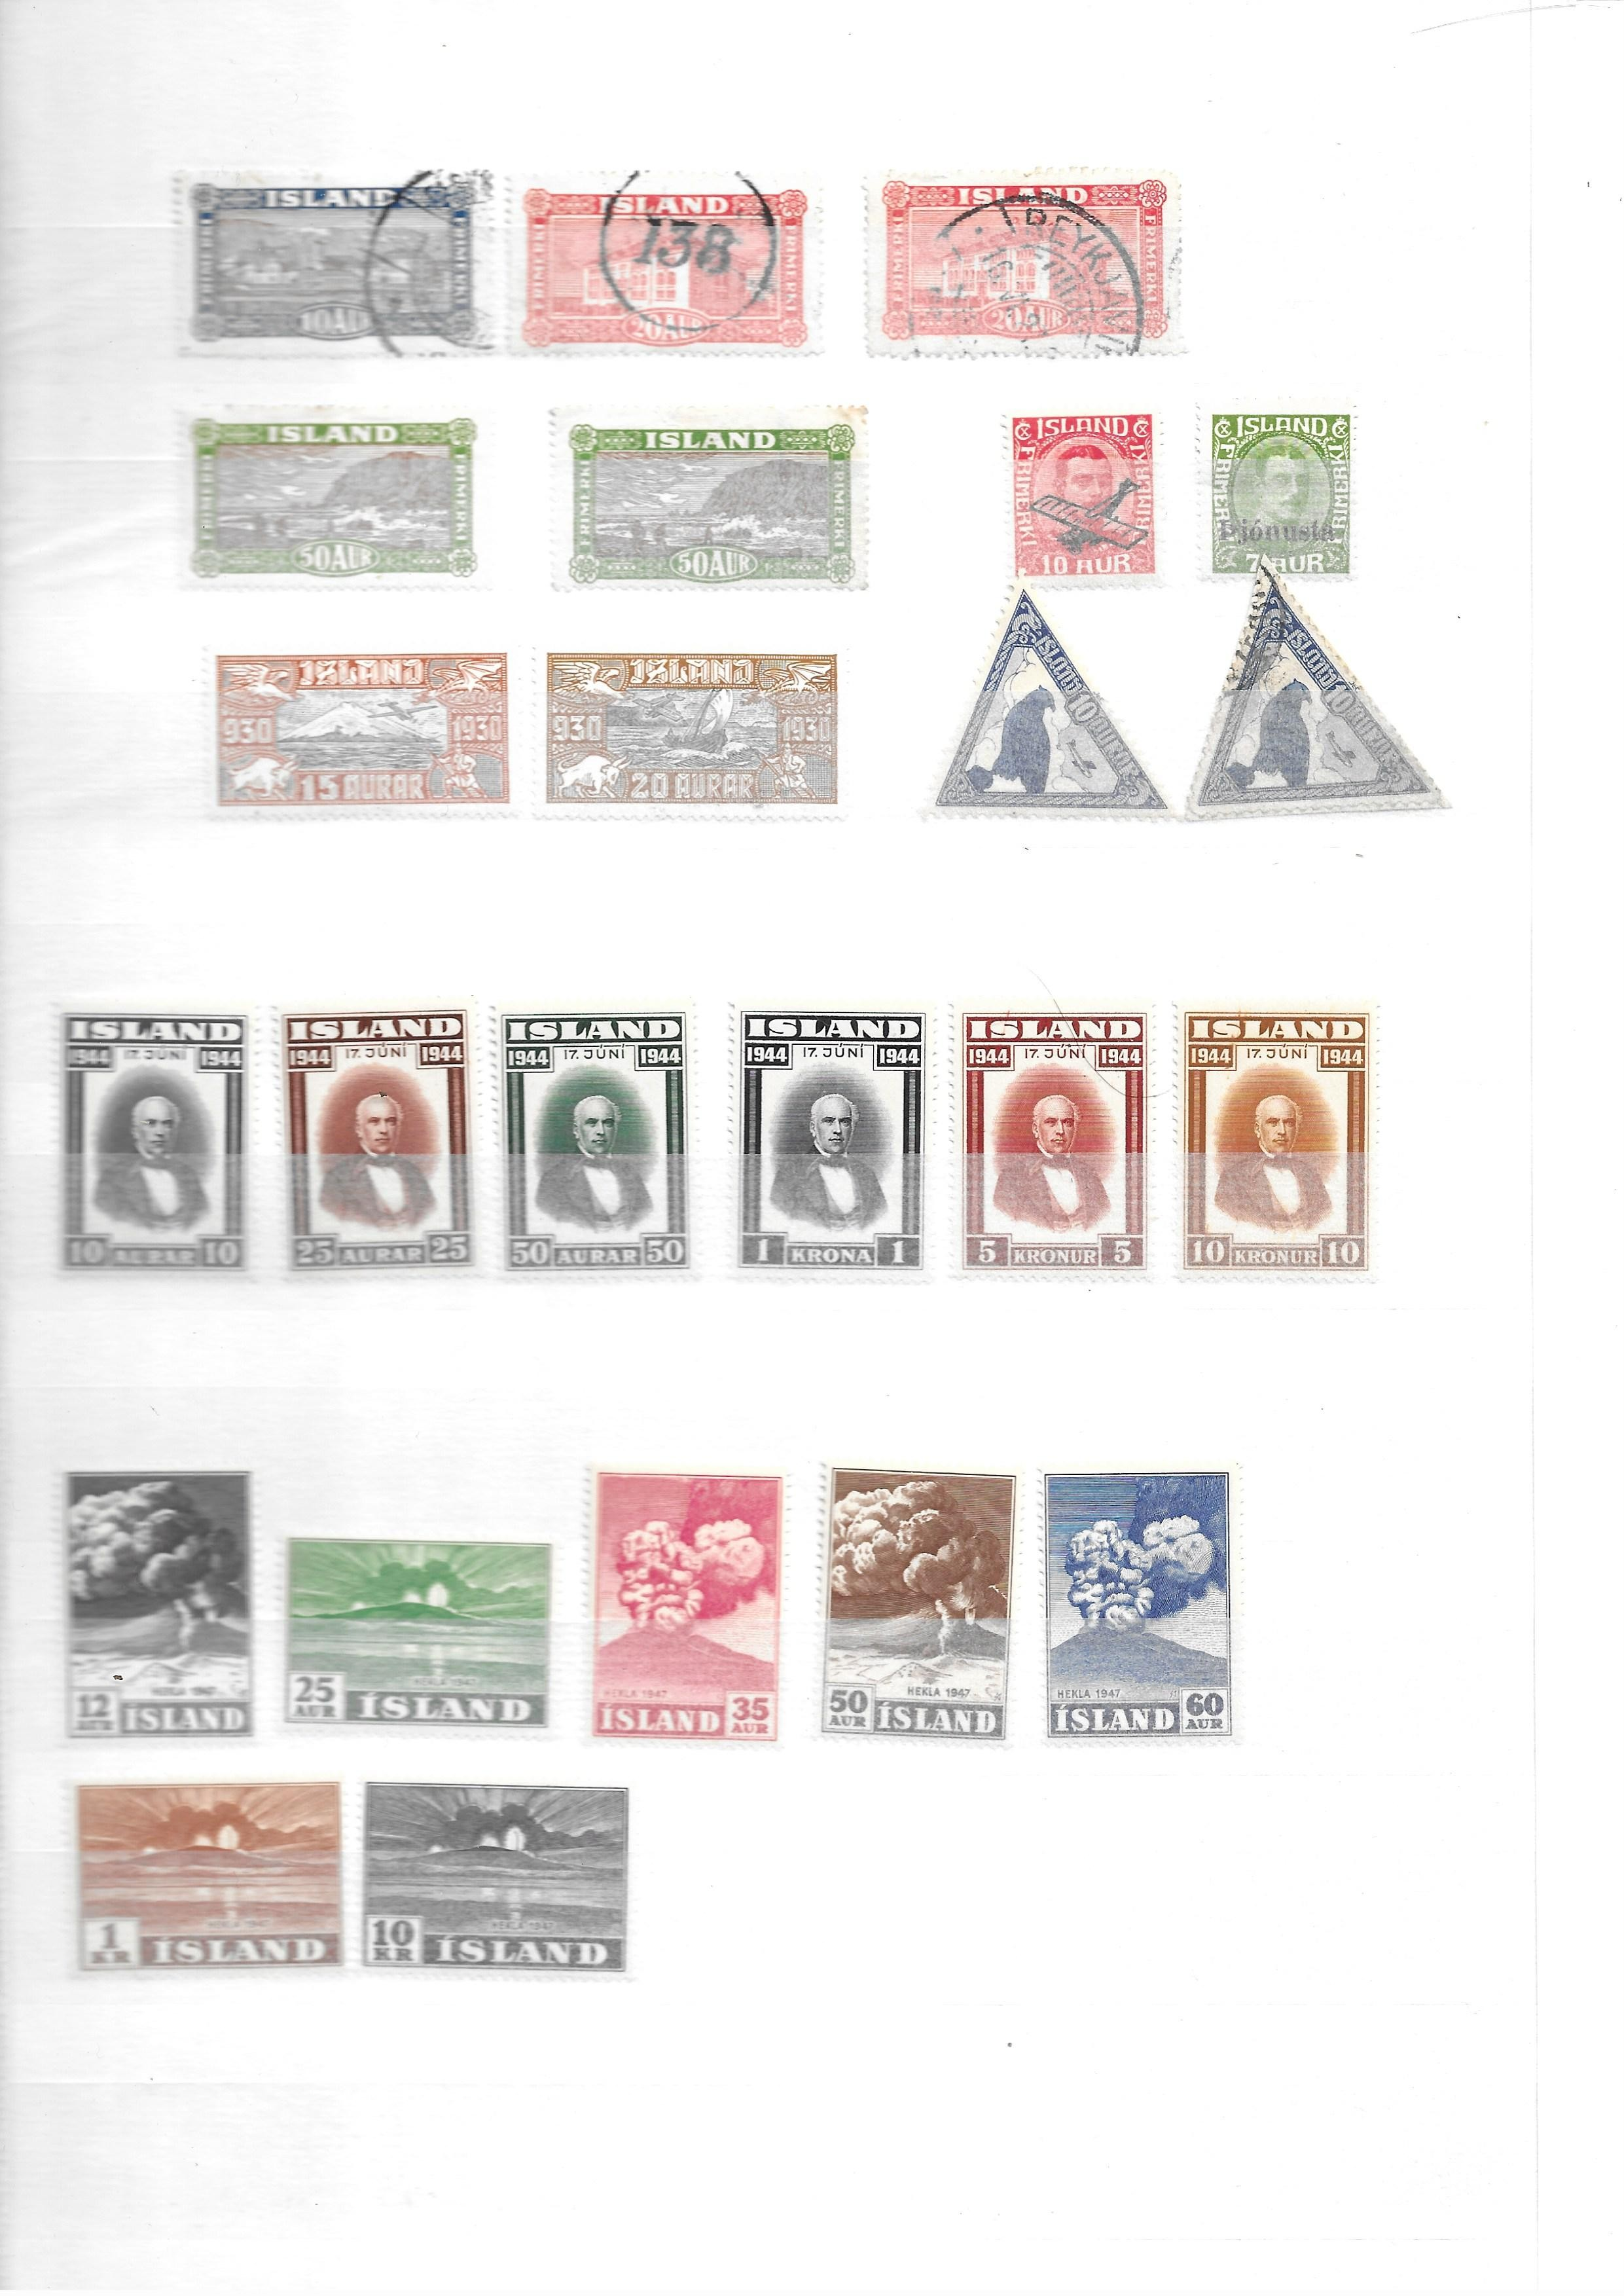 Iceland 1882-1940 unused and used collection on stockcards with sets and better values - Image 4 of 5